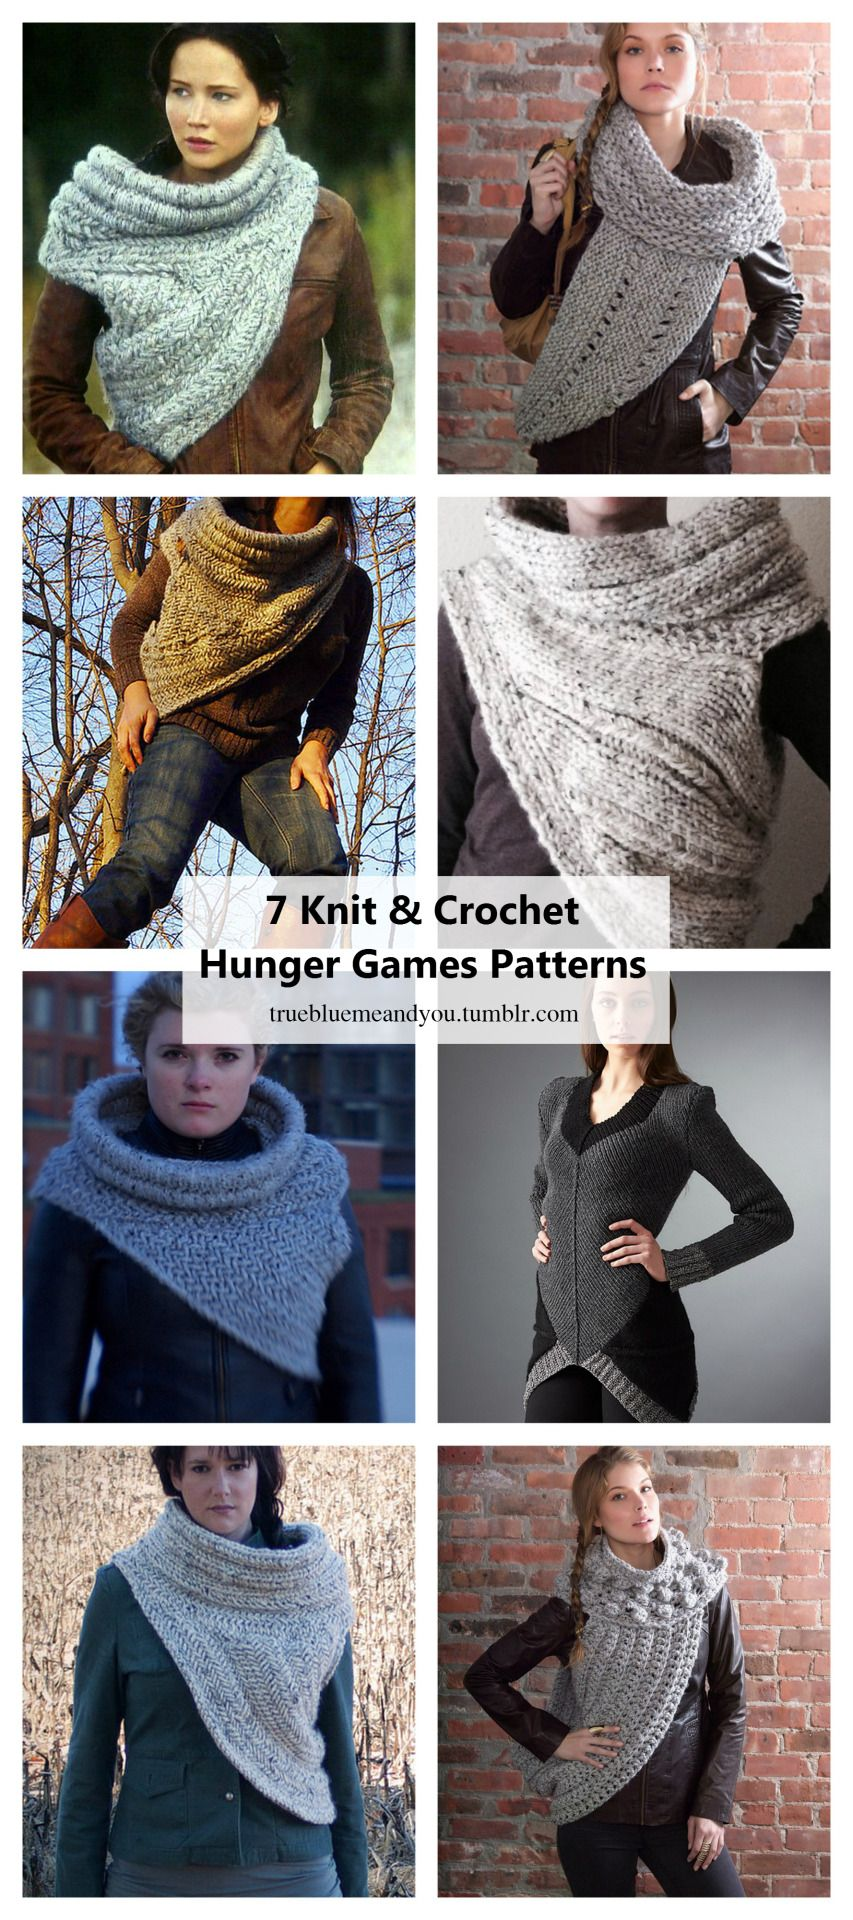 7 Knit And Crochet Hunger Games Katniss Patterns Roundup By